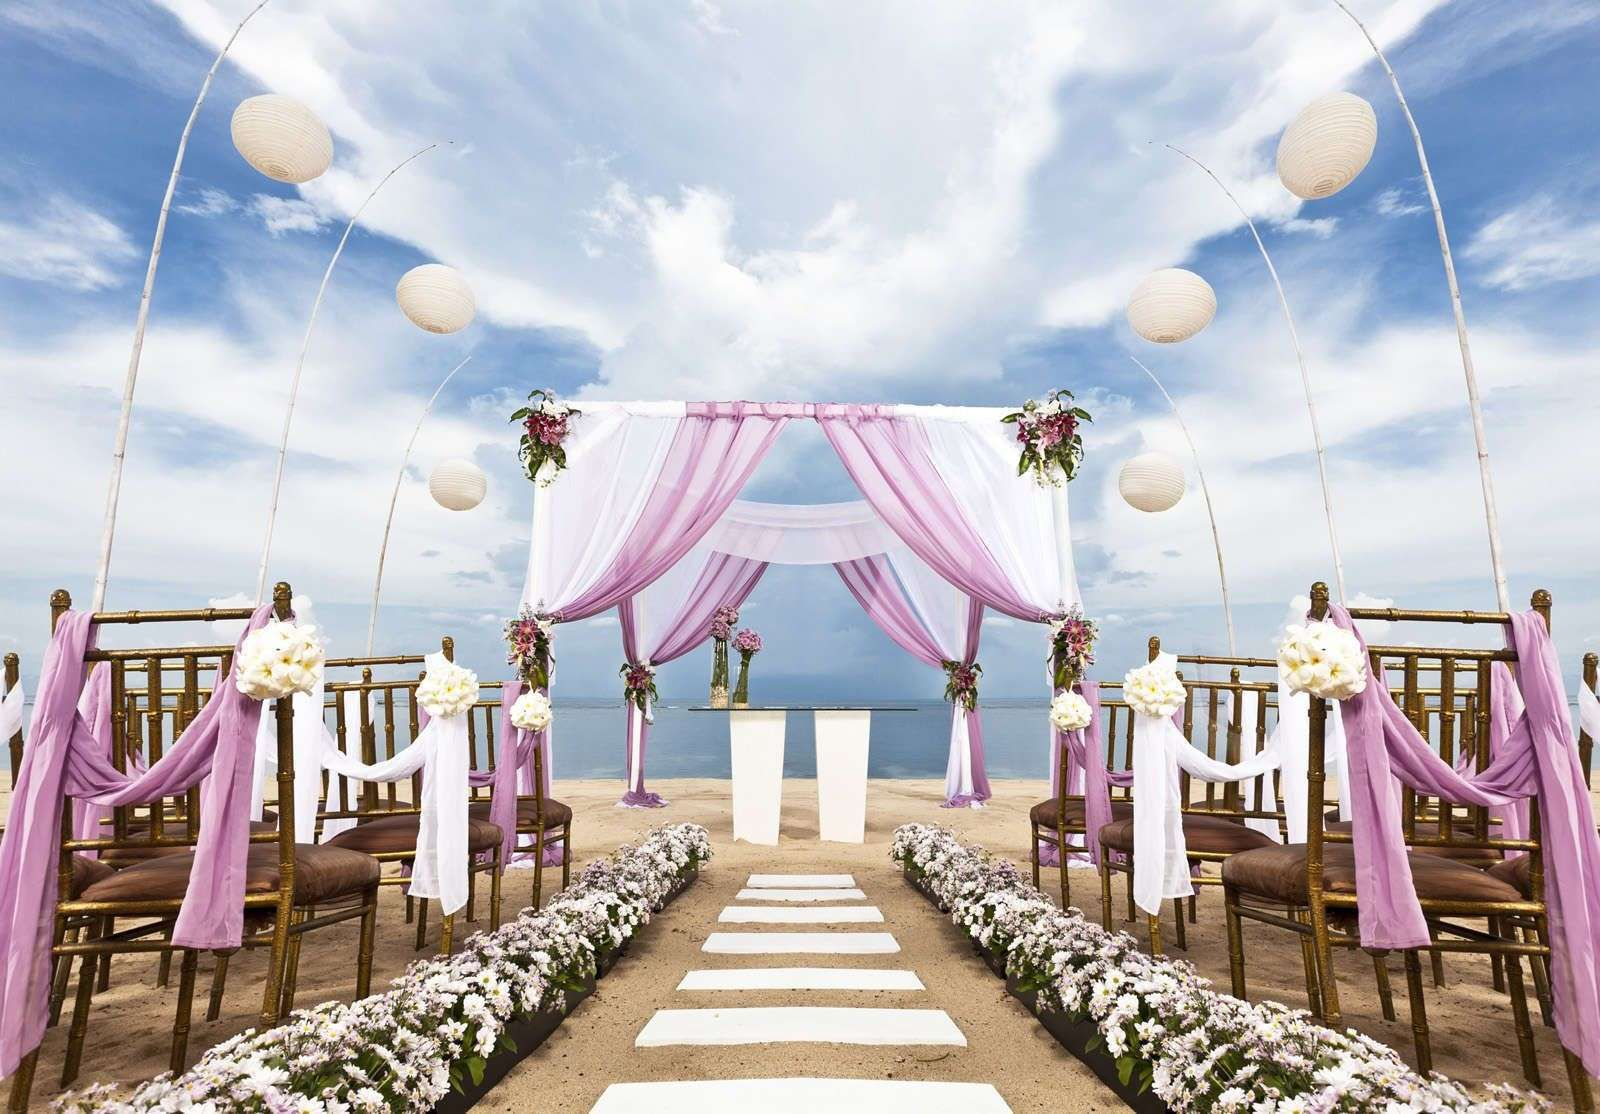 534130c56f0530bbd4273bd337bfb6bd - auckland wedding venues by the beach